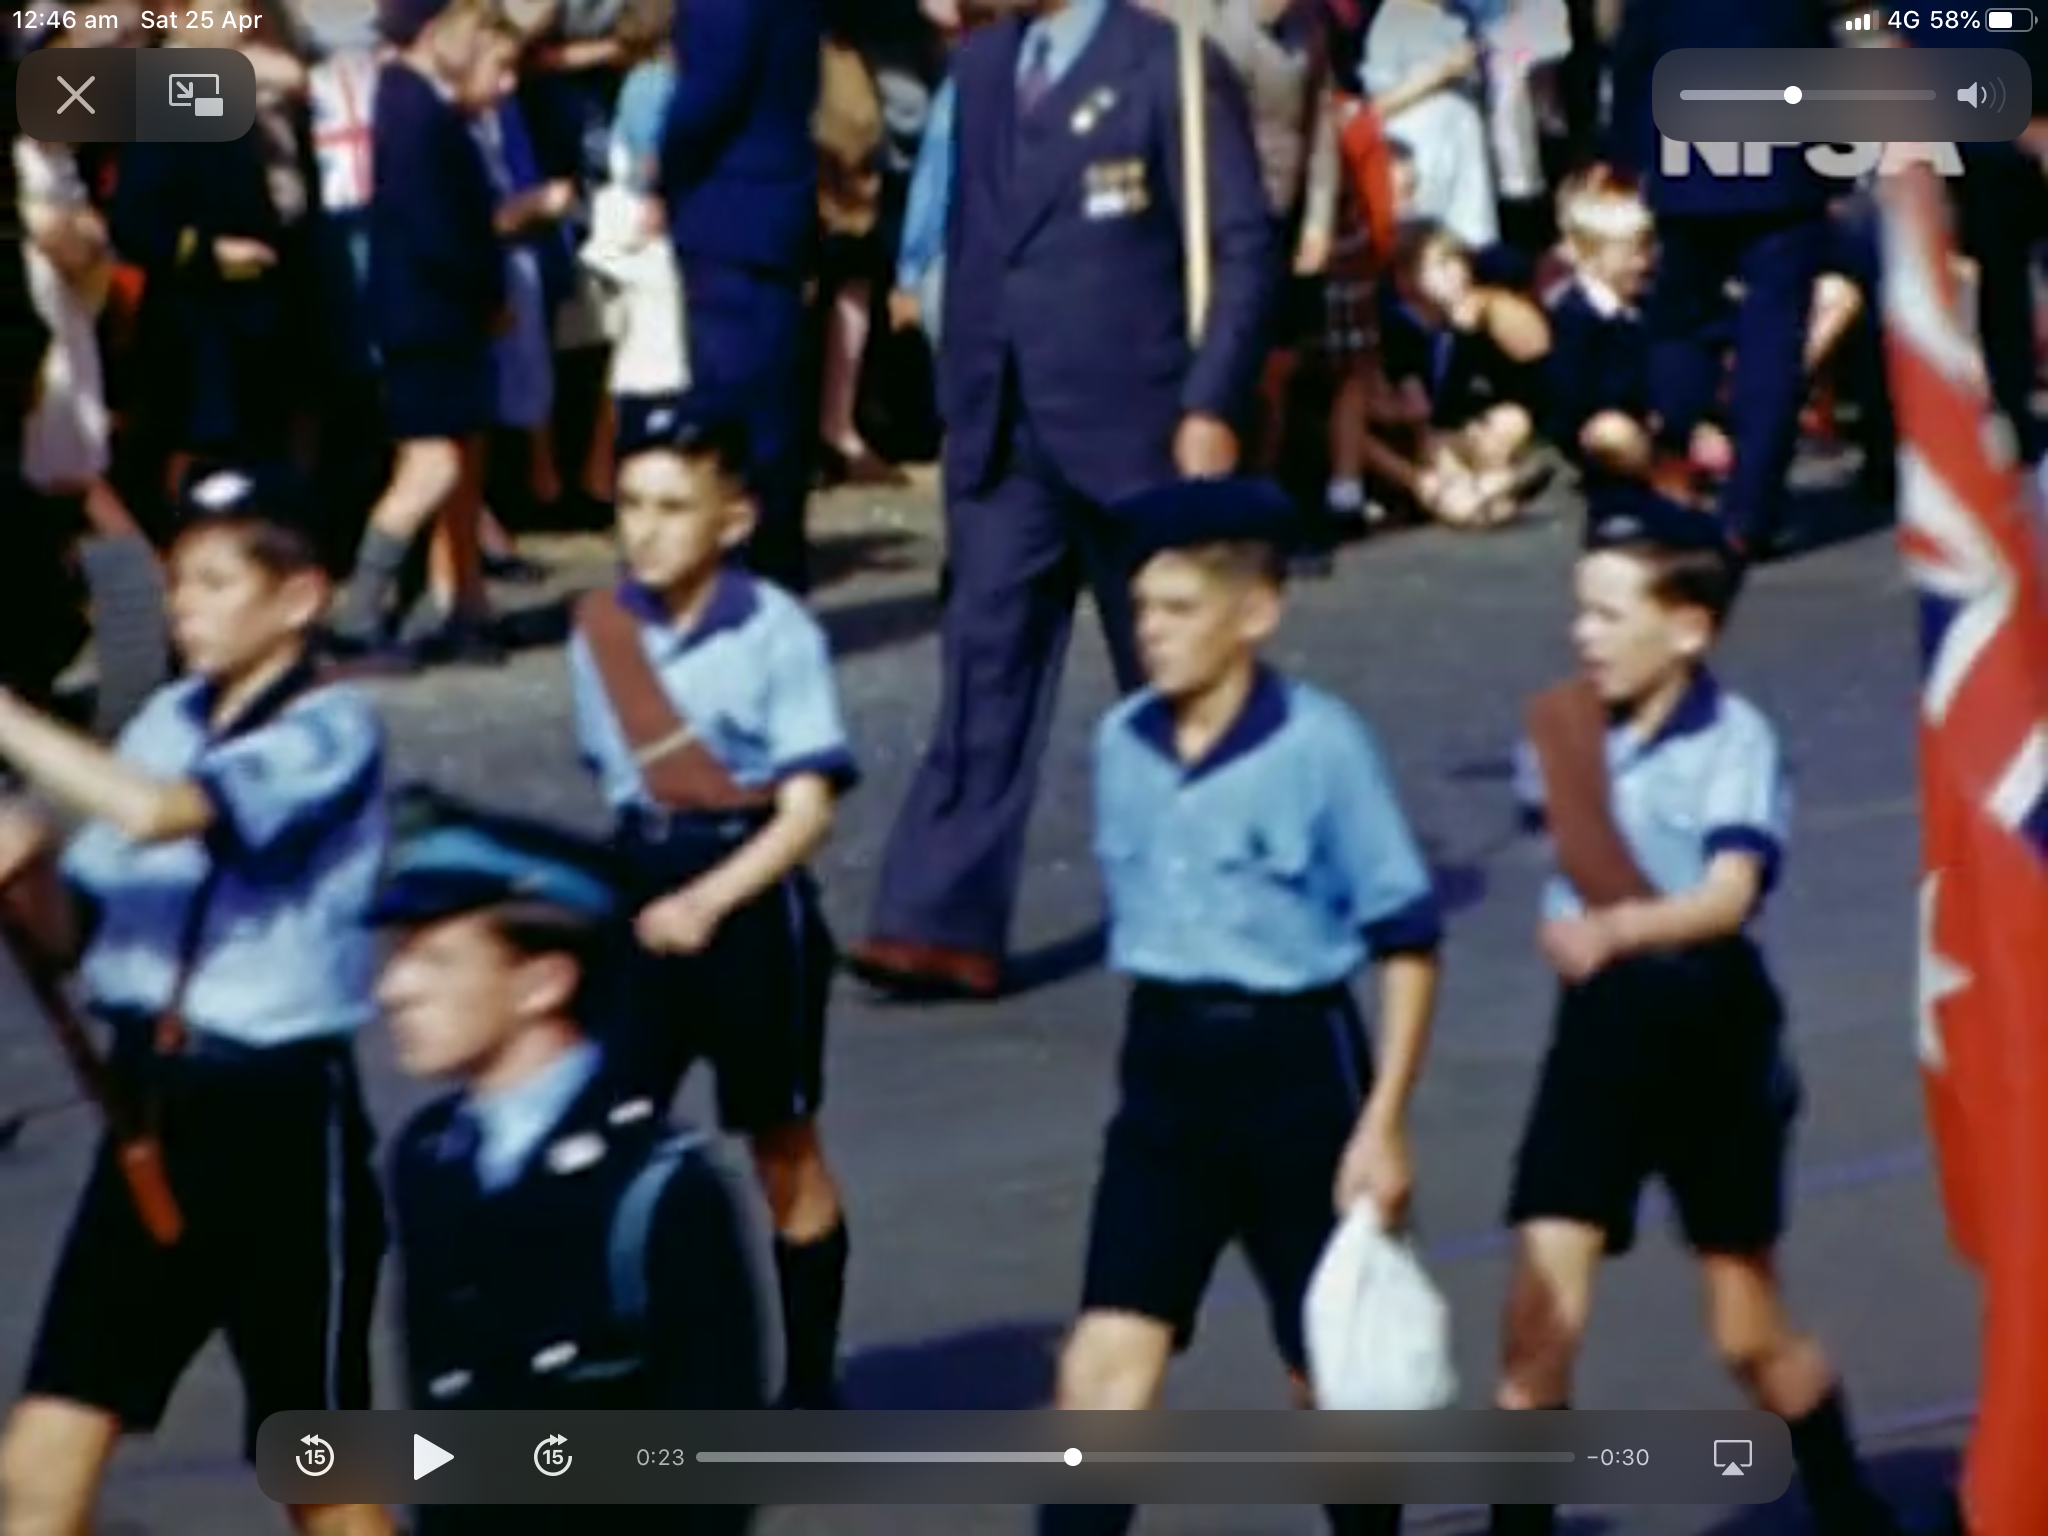 Anzac Day History, Marches and Traditions NFSA in 2020